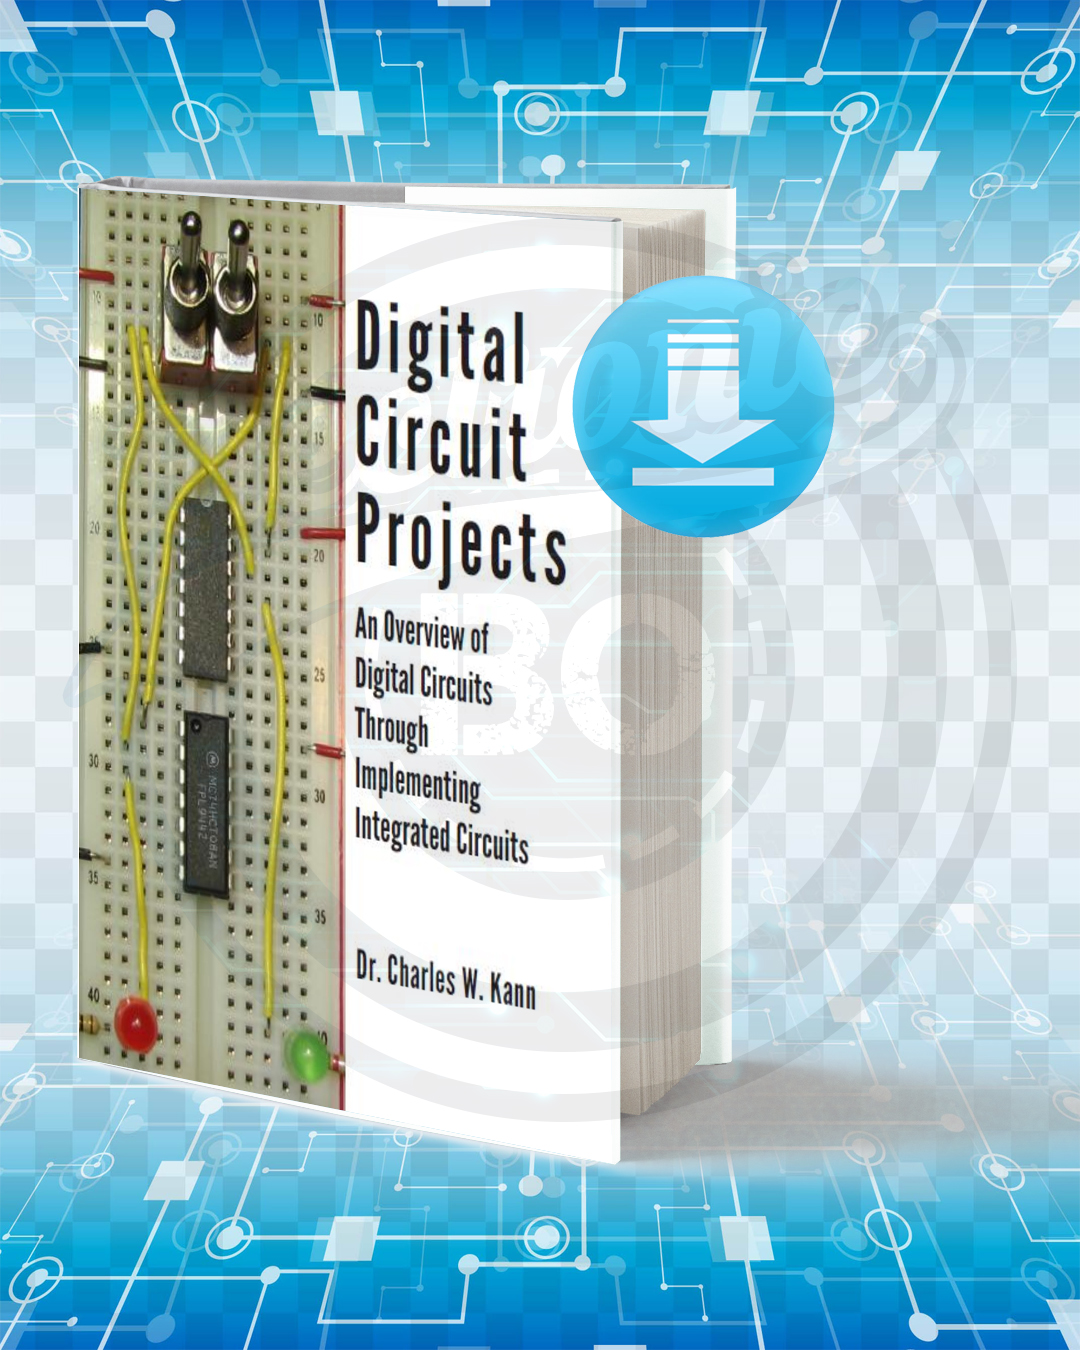 Free Book Digital Circuit Projects pdf.